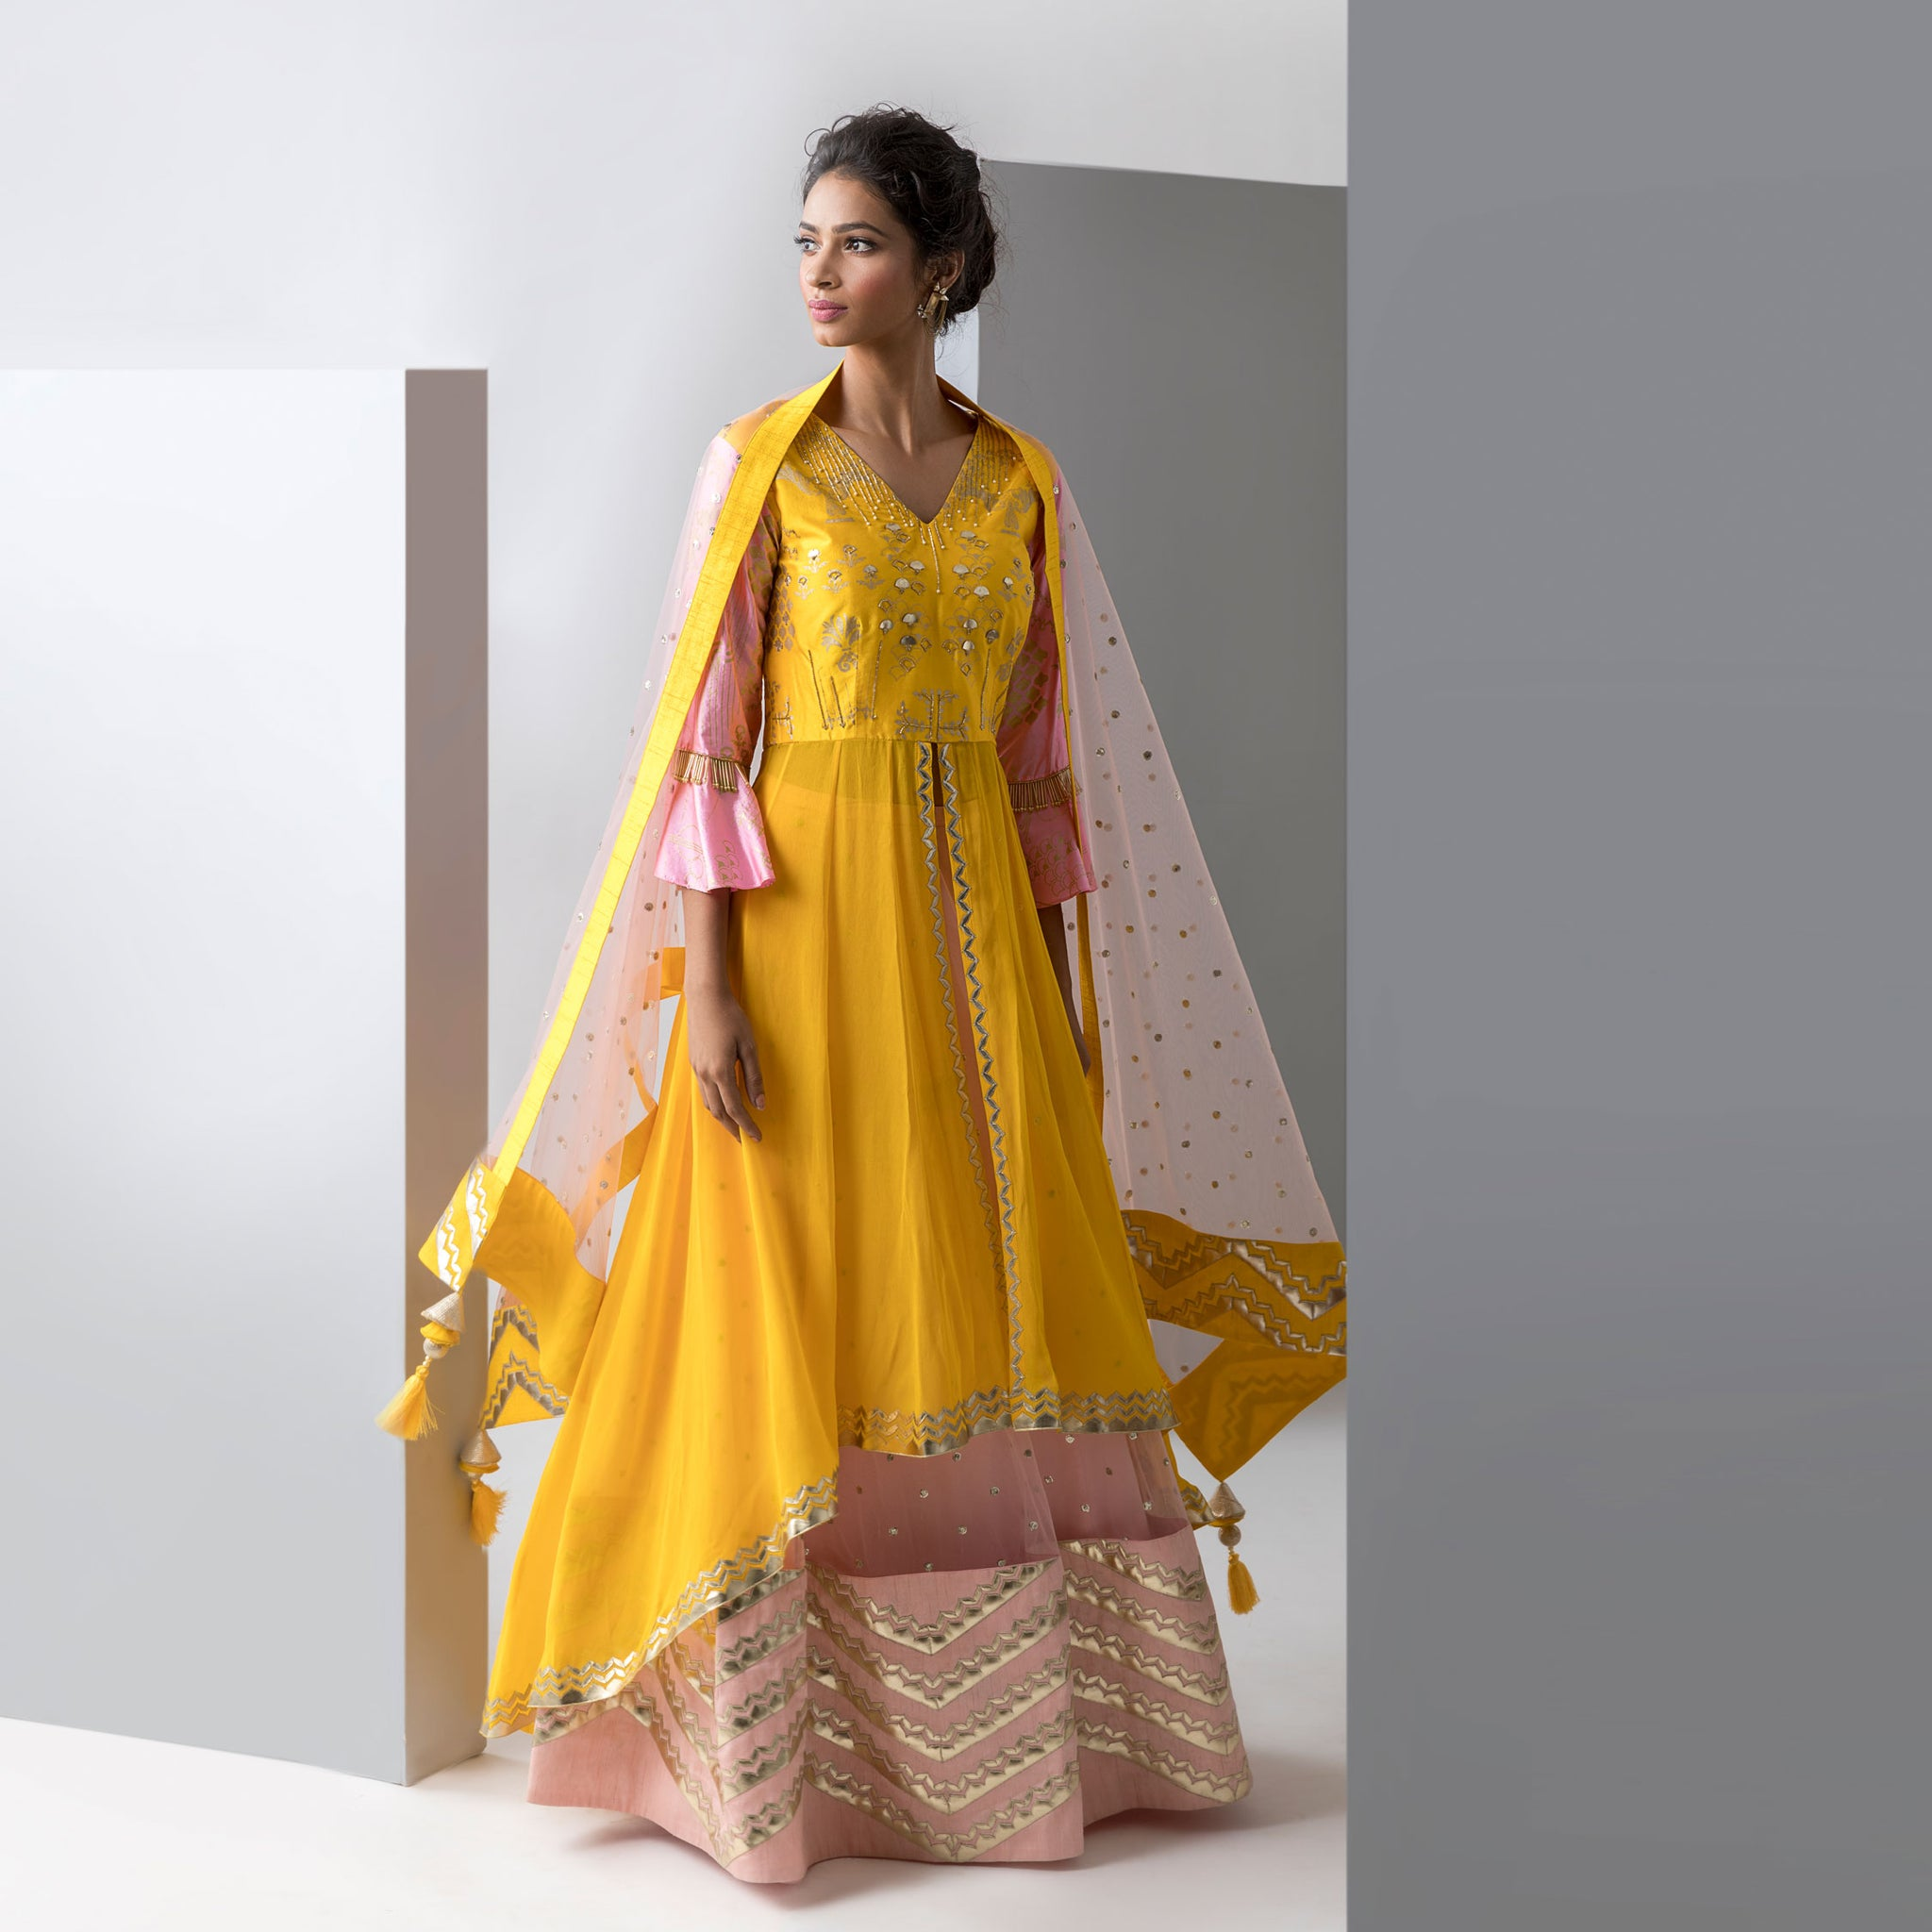 Embroidered Anarkali with Lehenga Skirt and Dupatta